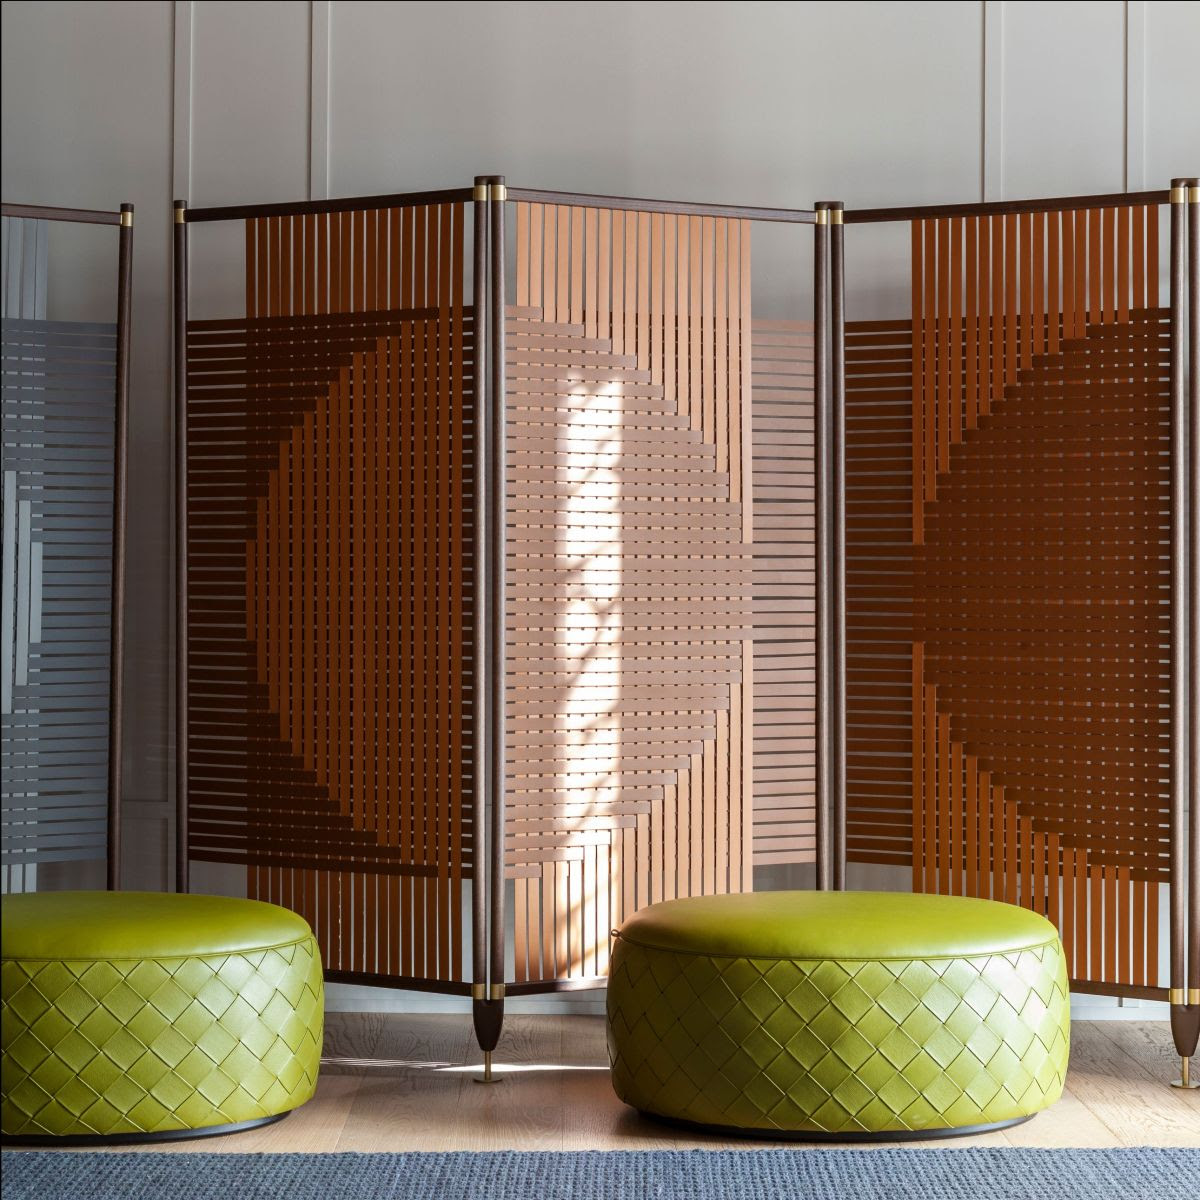 Plot: A Series of Playful Room Dividers by GamFratesi for Poltrona Frau